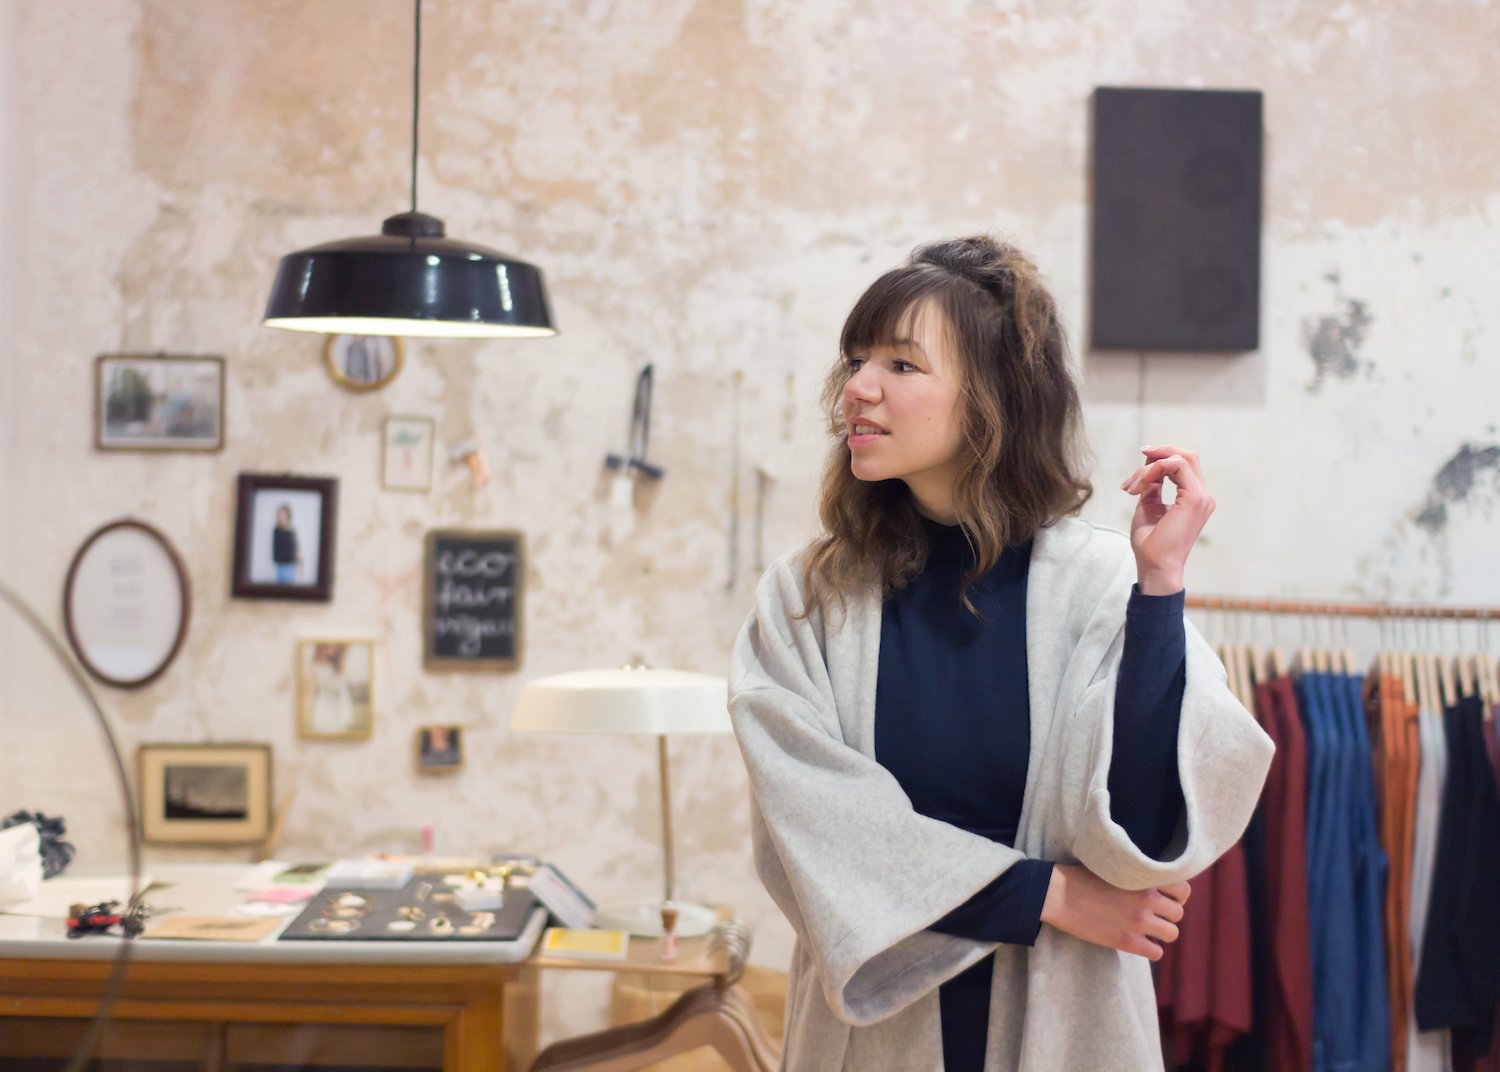 Fair Fashion Stores - Eco Fashion Stores - City Guide to Berlin